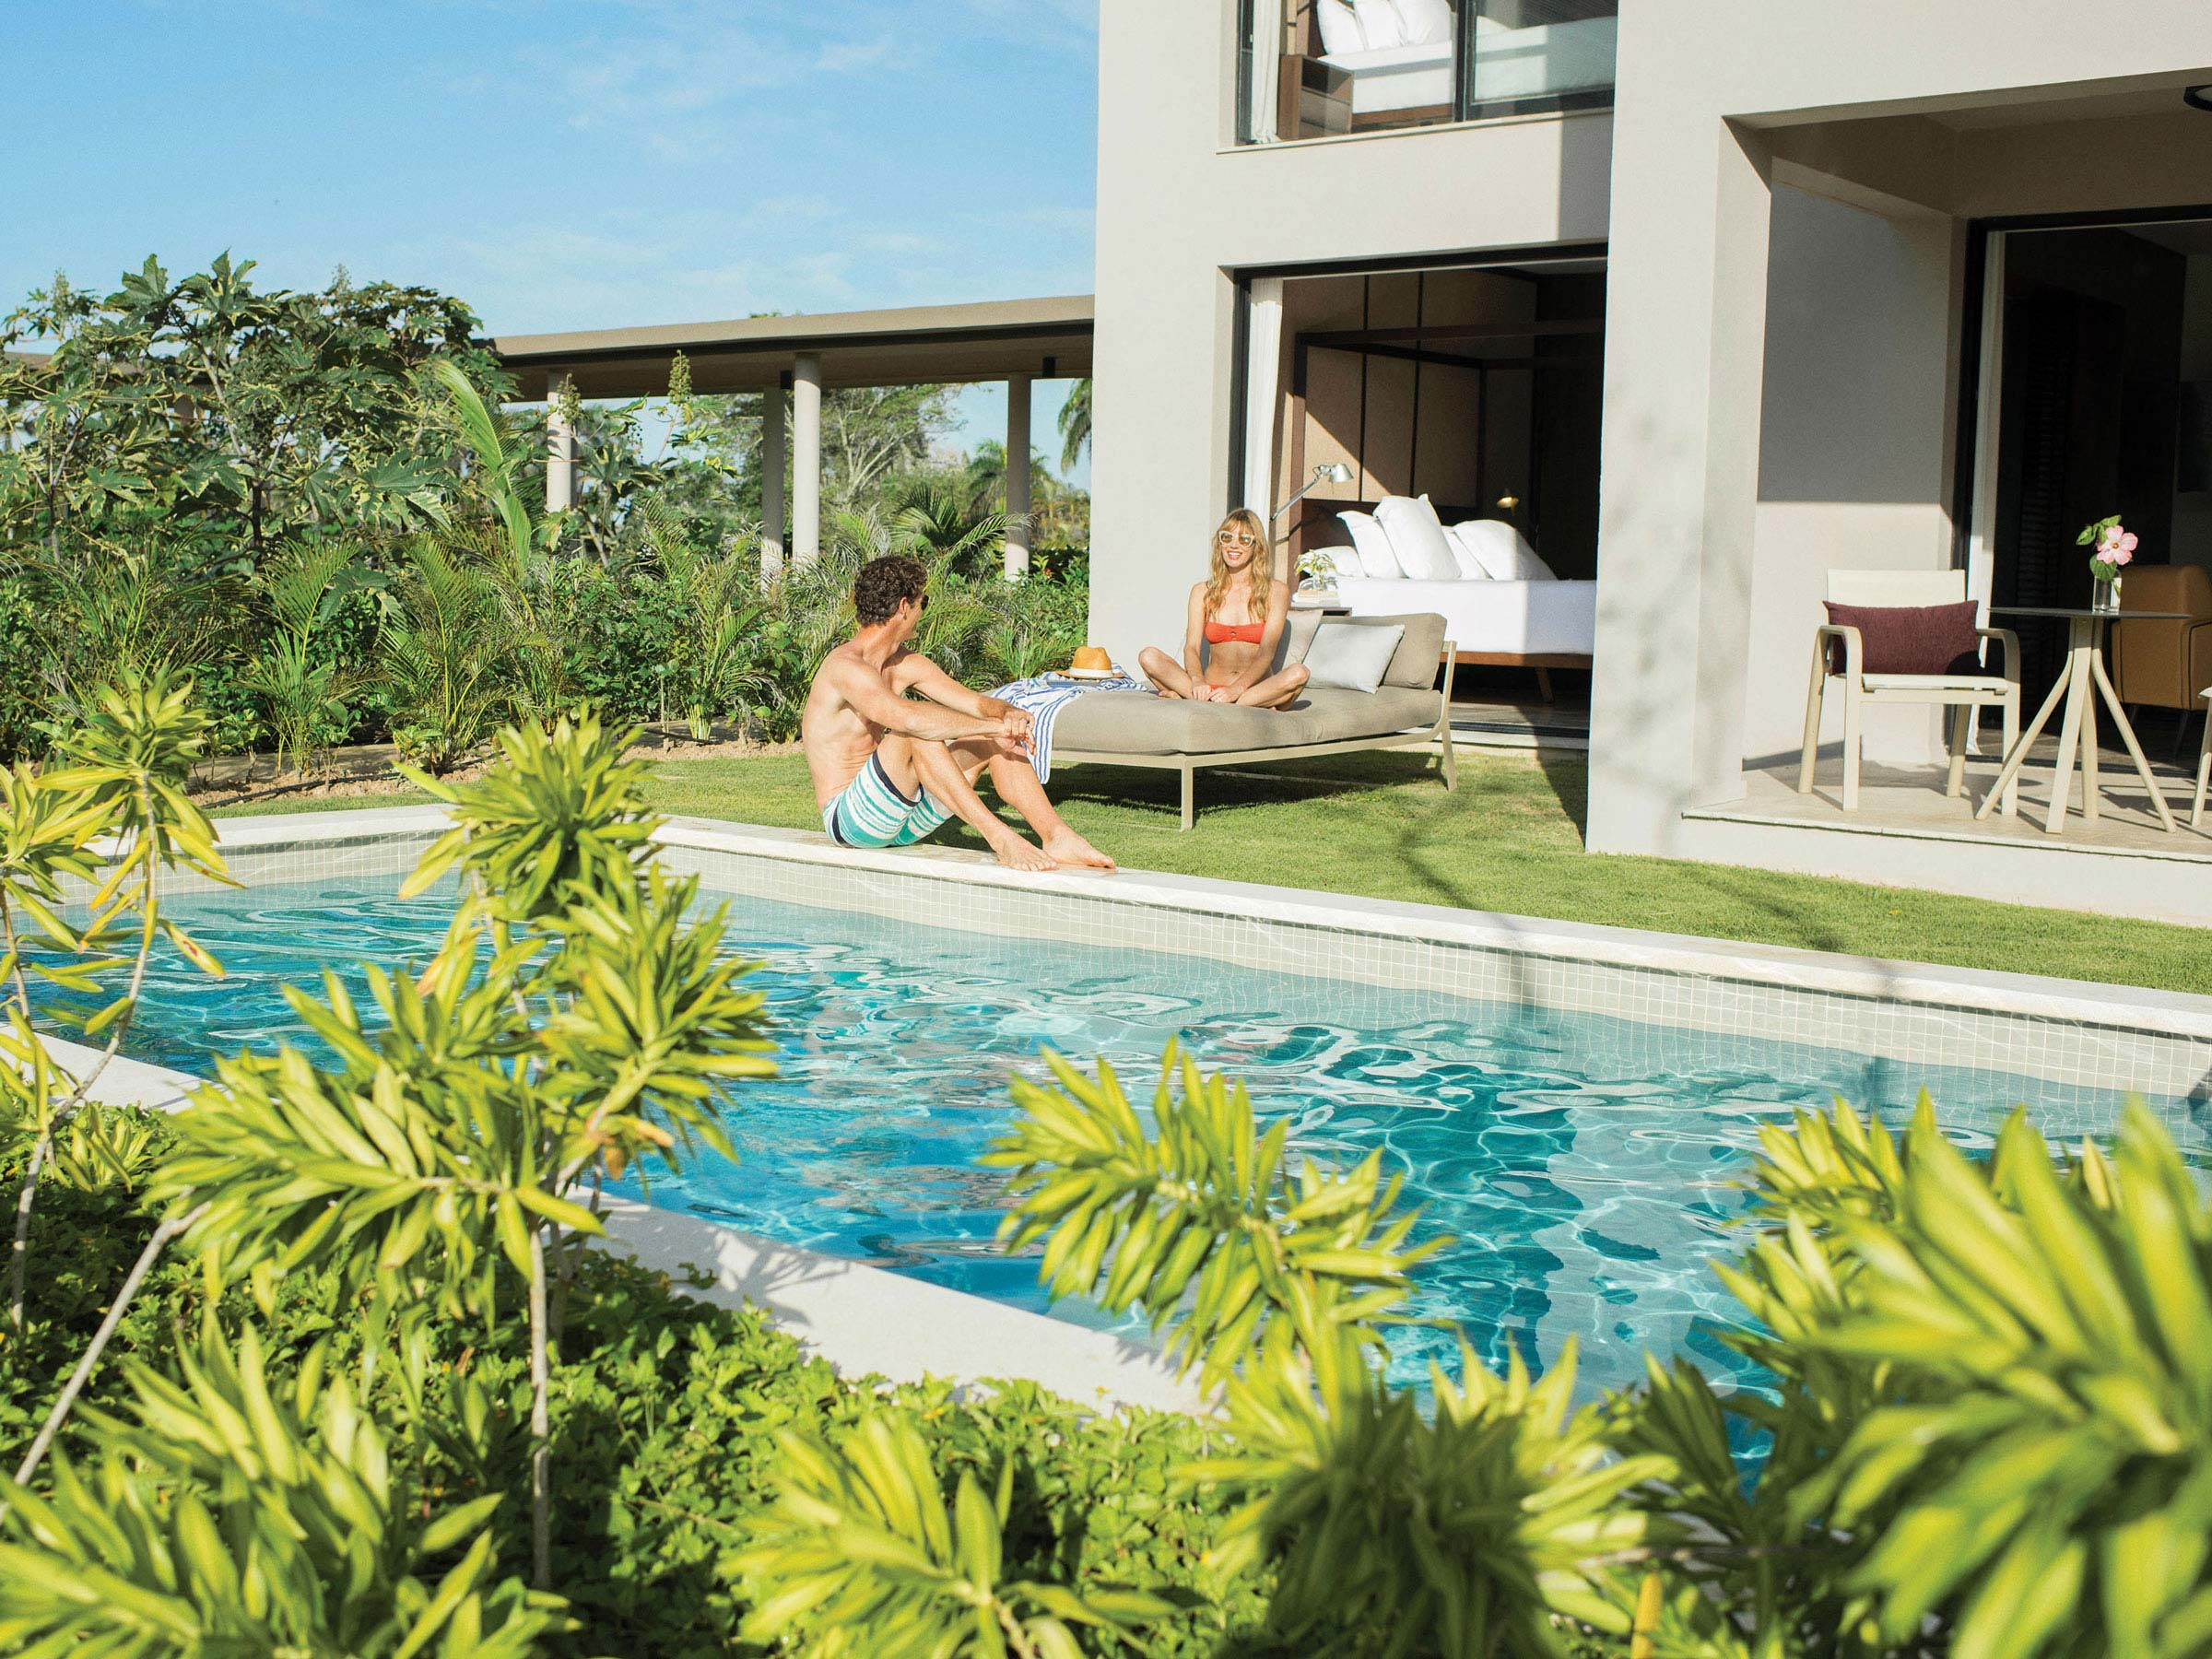 Indulge in Luxury Suites with Our All Inclusive Vacation Deals at Excellence Punta Cana